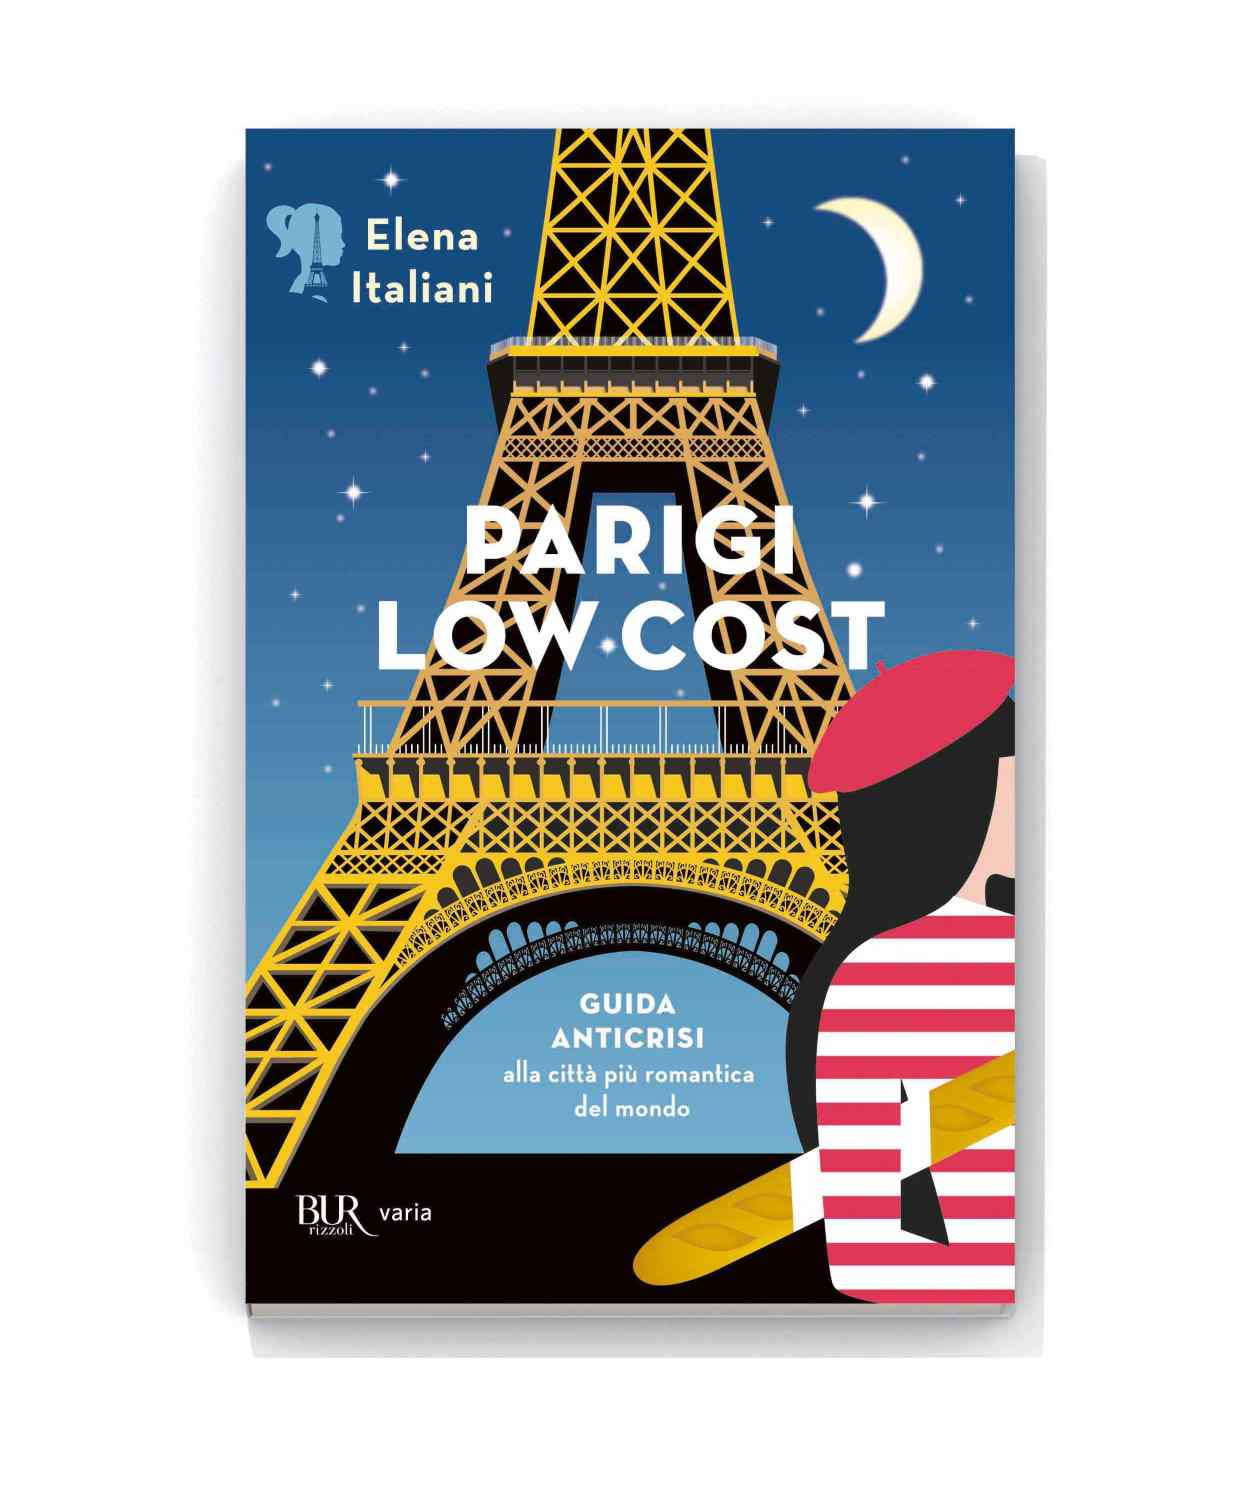 Condividiamo il nostro amore per Parigi – Paris we love you